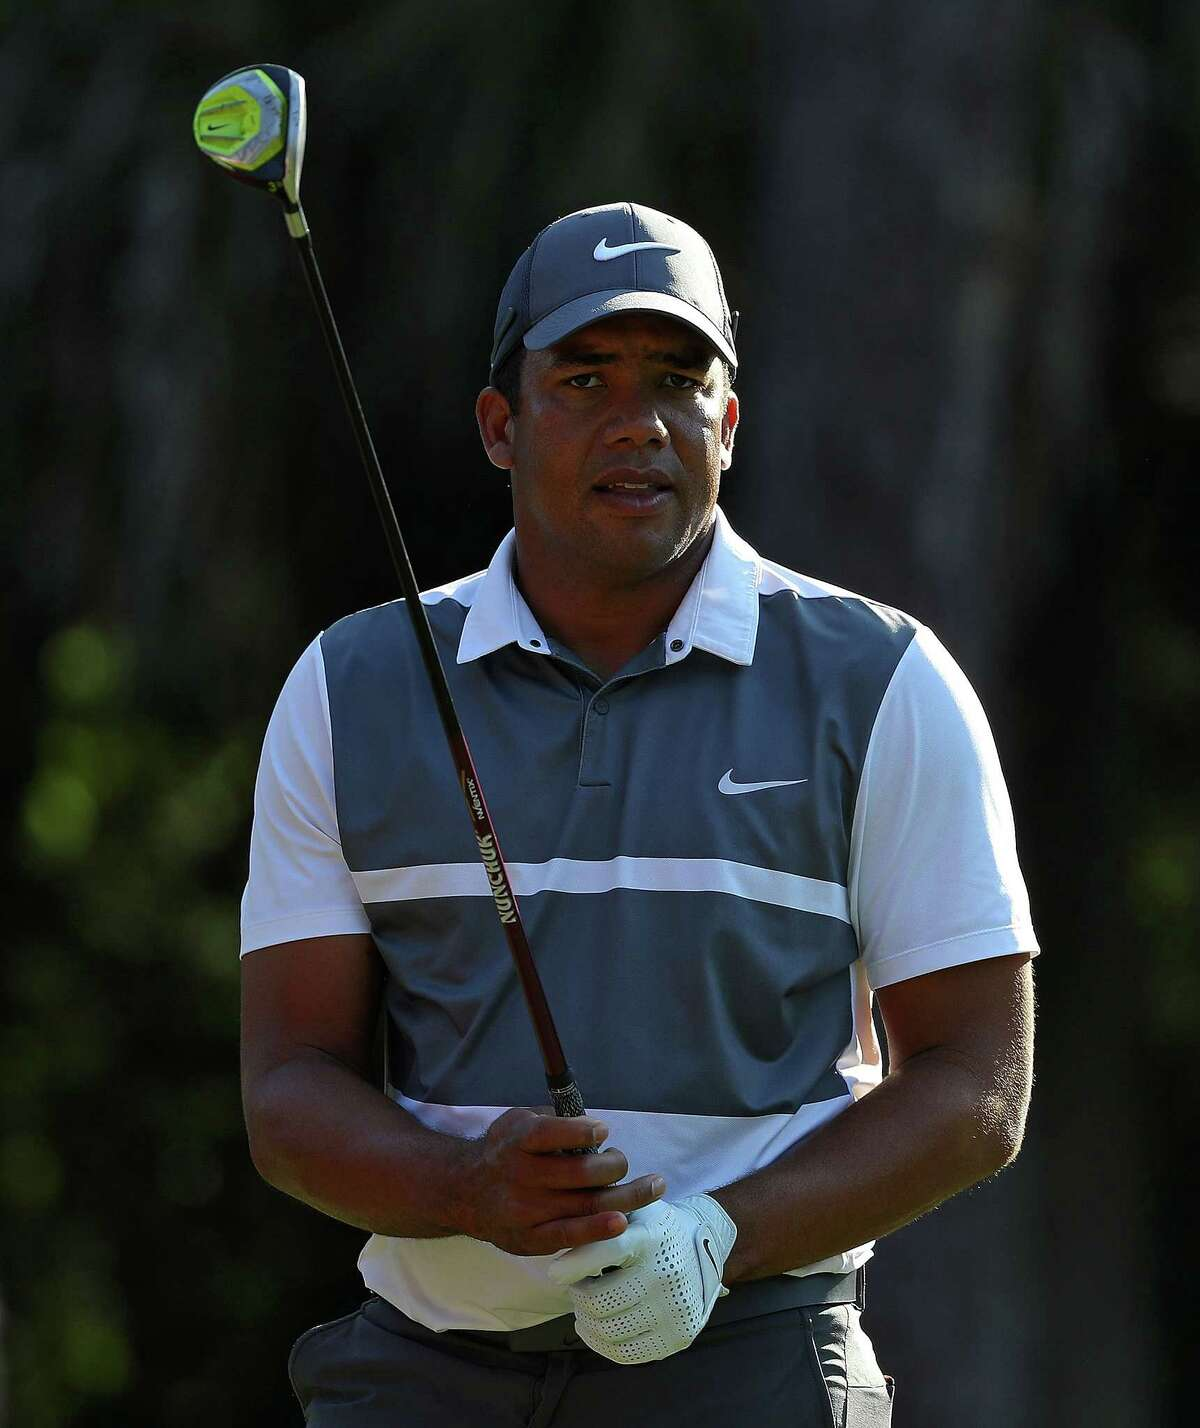 PONTE VEDRA BEACH, FL - MAY 11: Jhonattan Vegas of Venezuela in action during a practice round prior to THE PLAYERS Championship at the TPC Stadium course on May 11, 2016 in Ponte Vedra Beach, Florida. (Photo by Scott Halleran/Getty Images) ORG XMIT: 592311595